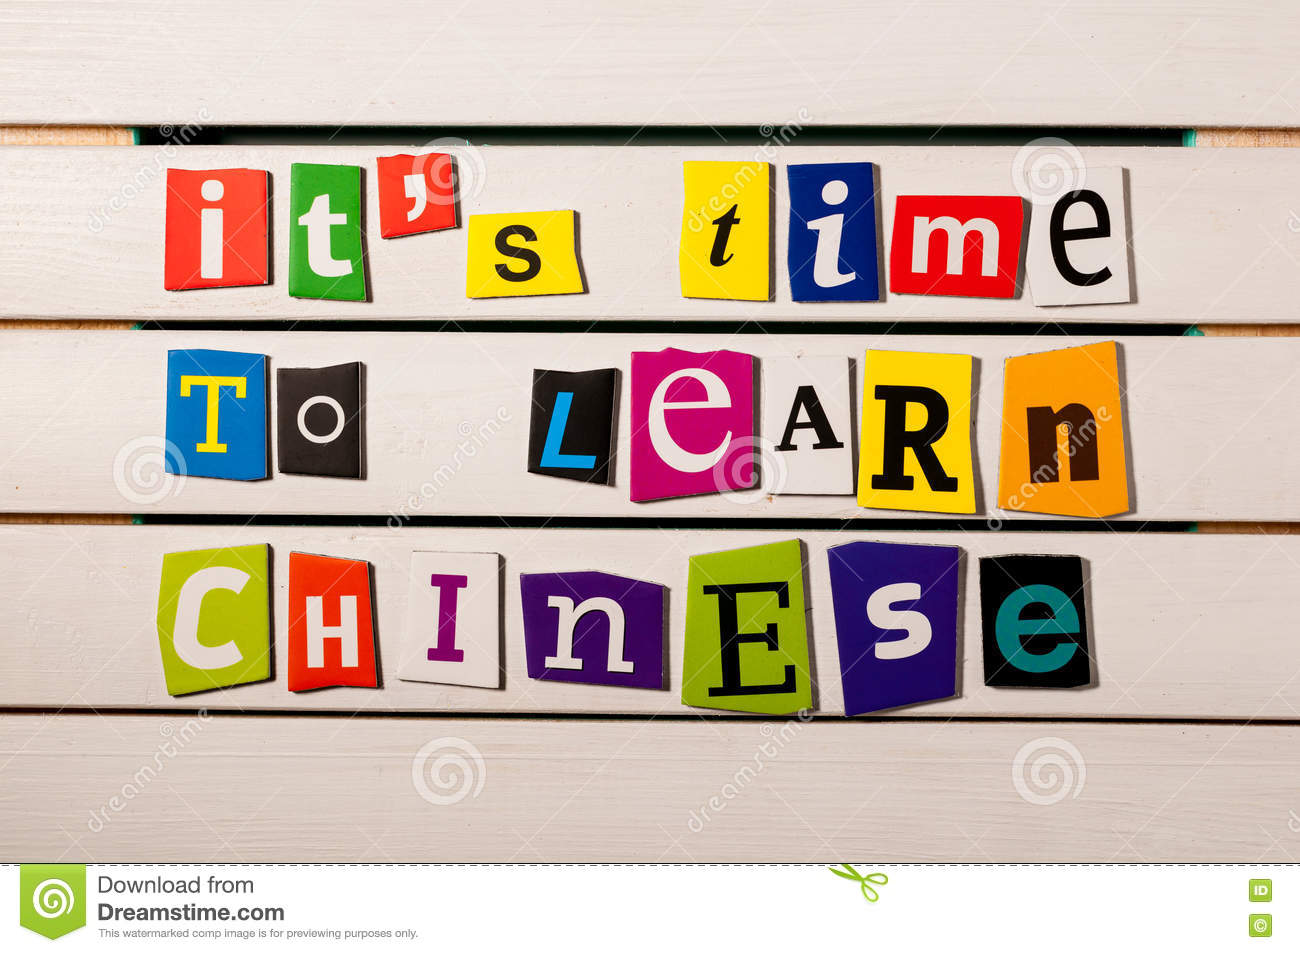 It s time to learn chinese - written with color magazine letter clippings on wooden board. Chinese language learning